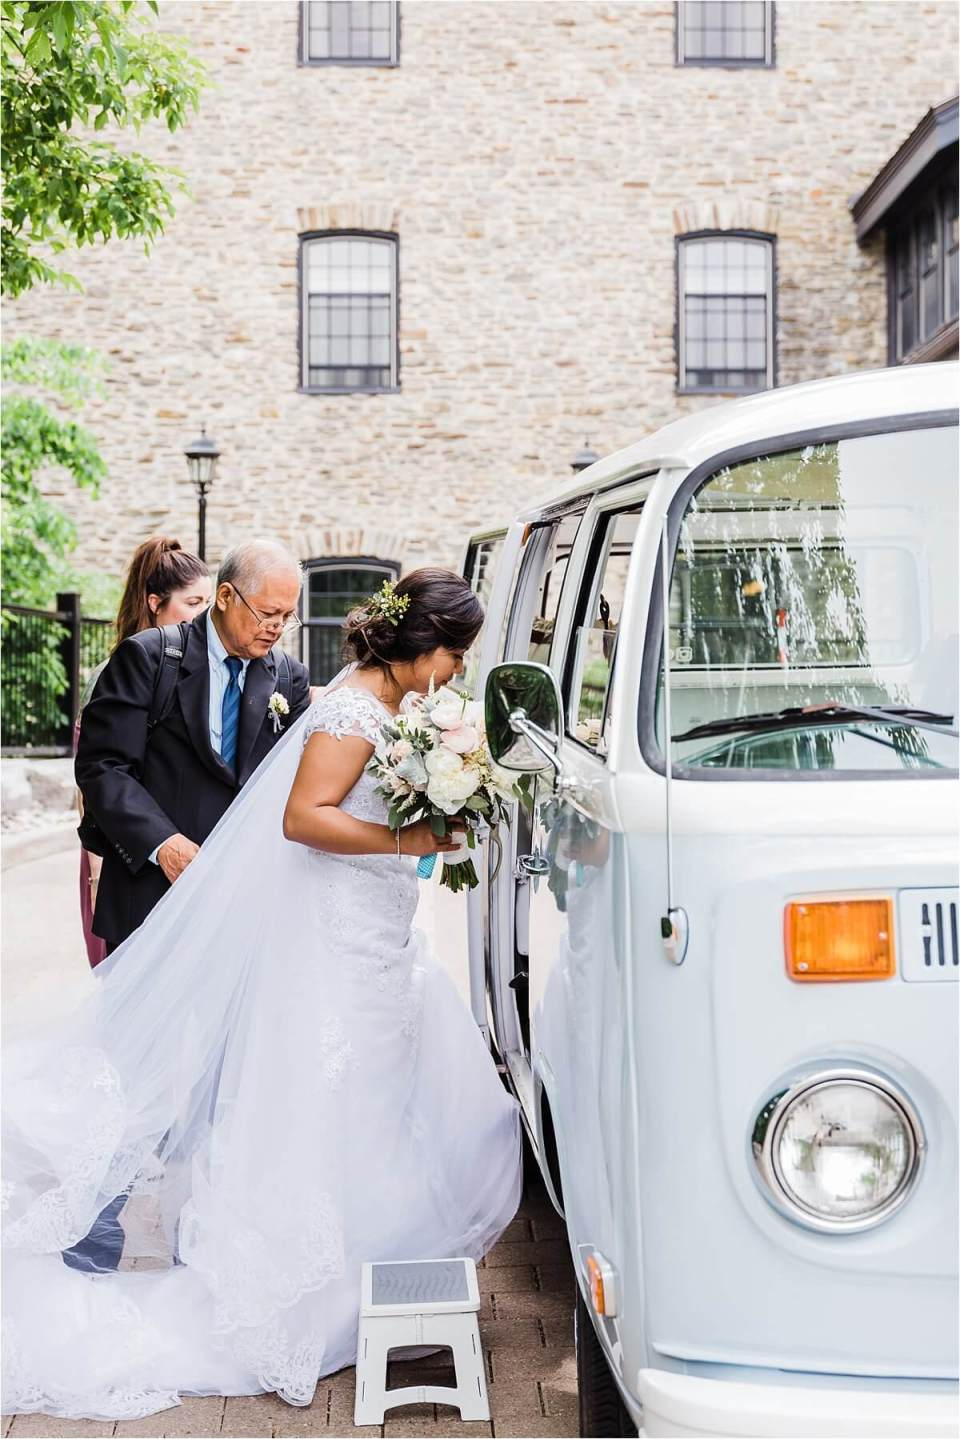 Bride getting into a VW Kombi when leaving the Old Mill Inn in Toronto Ontario during her wedding day